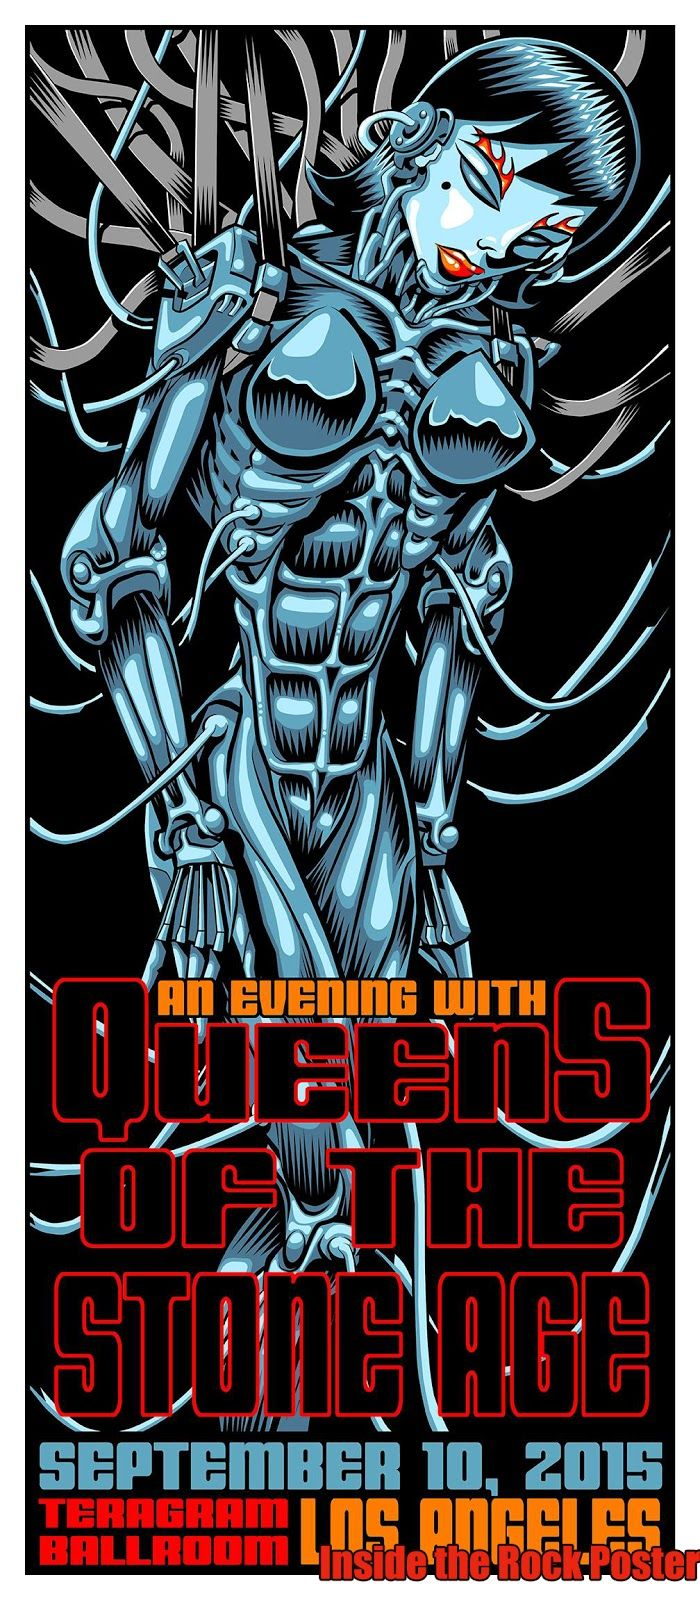 Jim Evans TAZ Queens of the Stone Age Los Angeles Poster For Secret Show World Premiere Exclusive